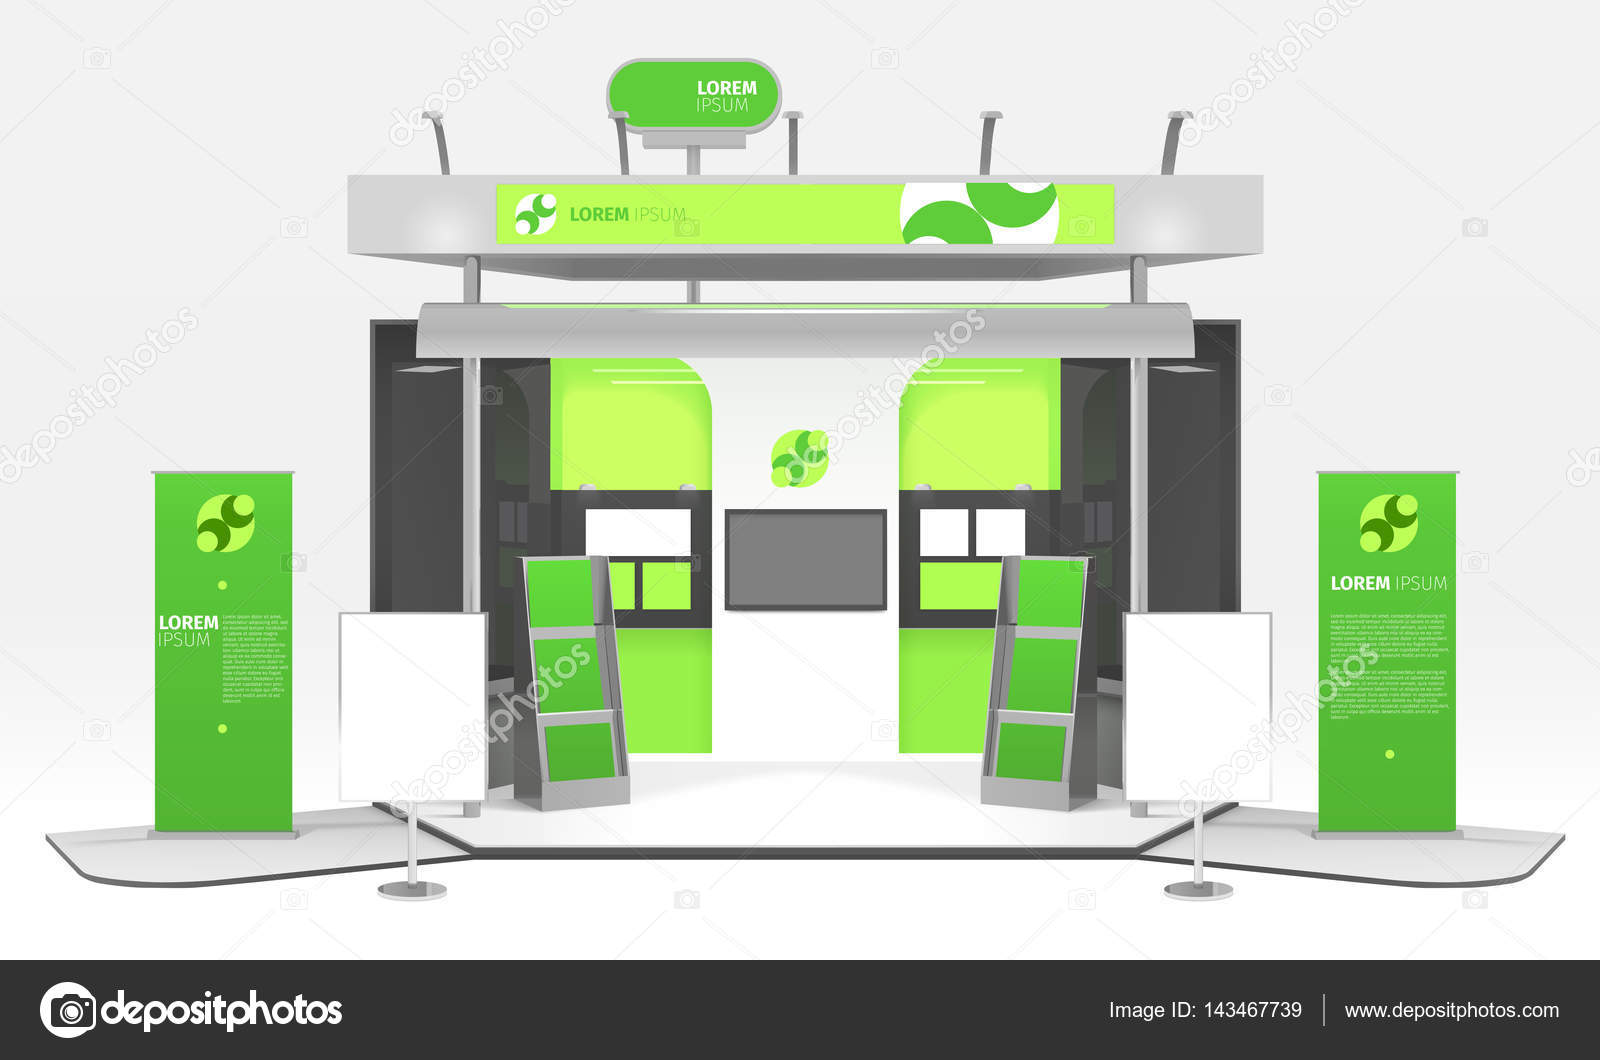 Exhibition Stand Design Illustrator : Green energy exhibition stand design — stock vector